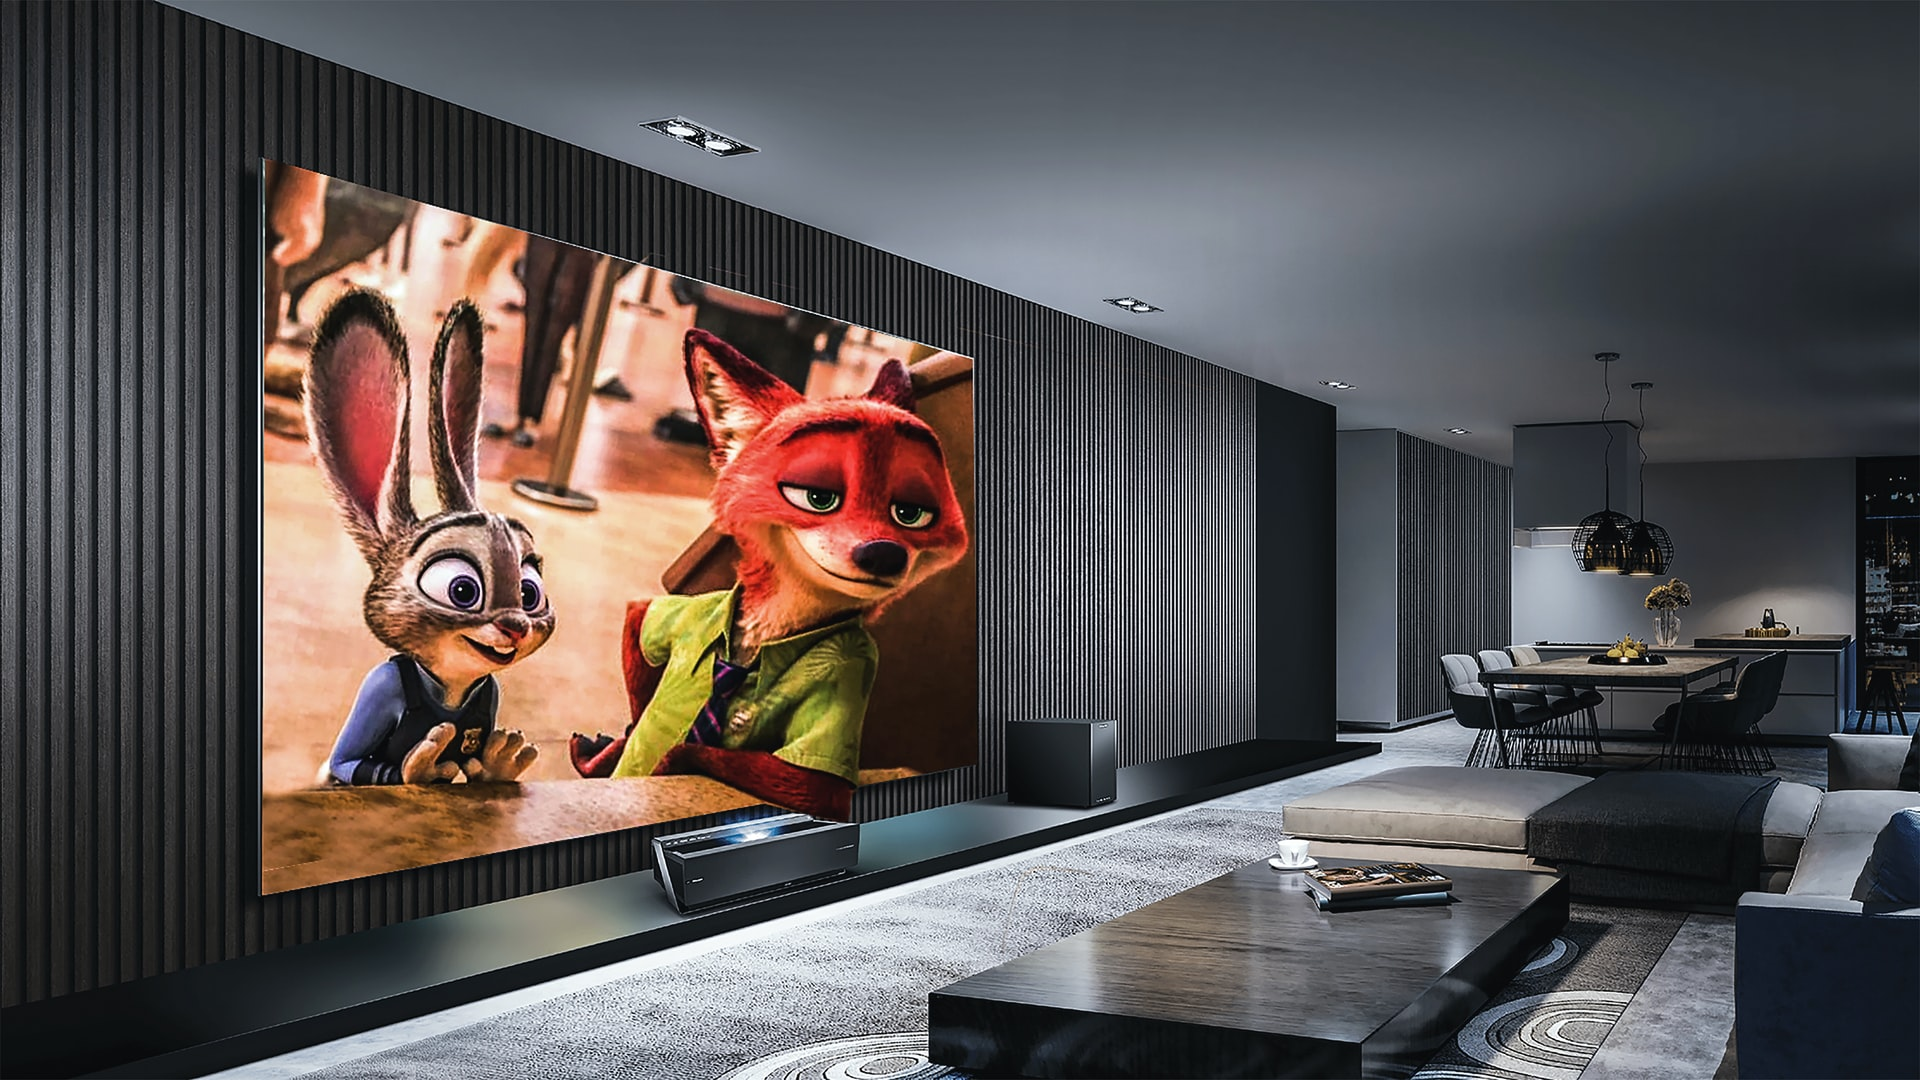 playing animated movie on large screen tv